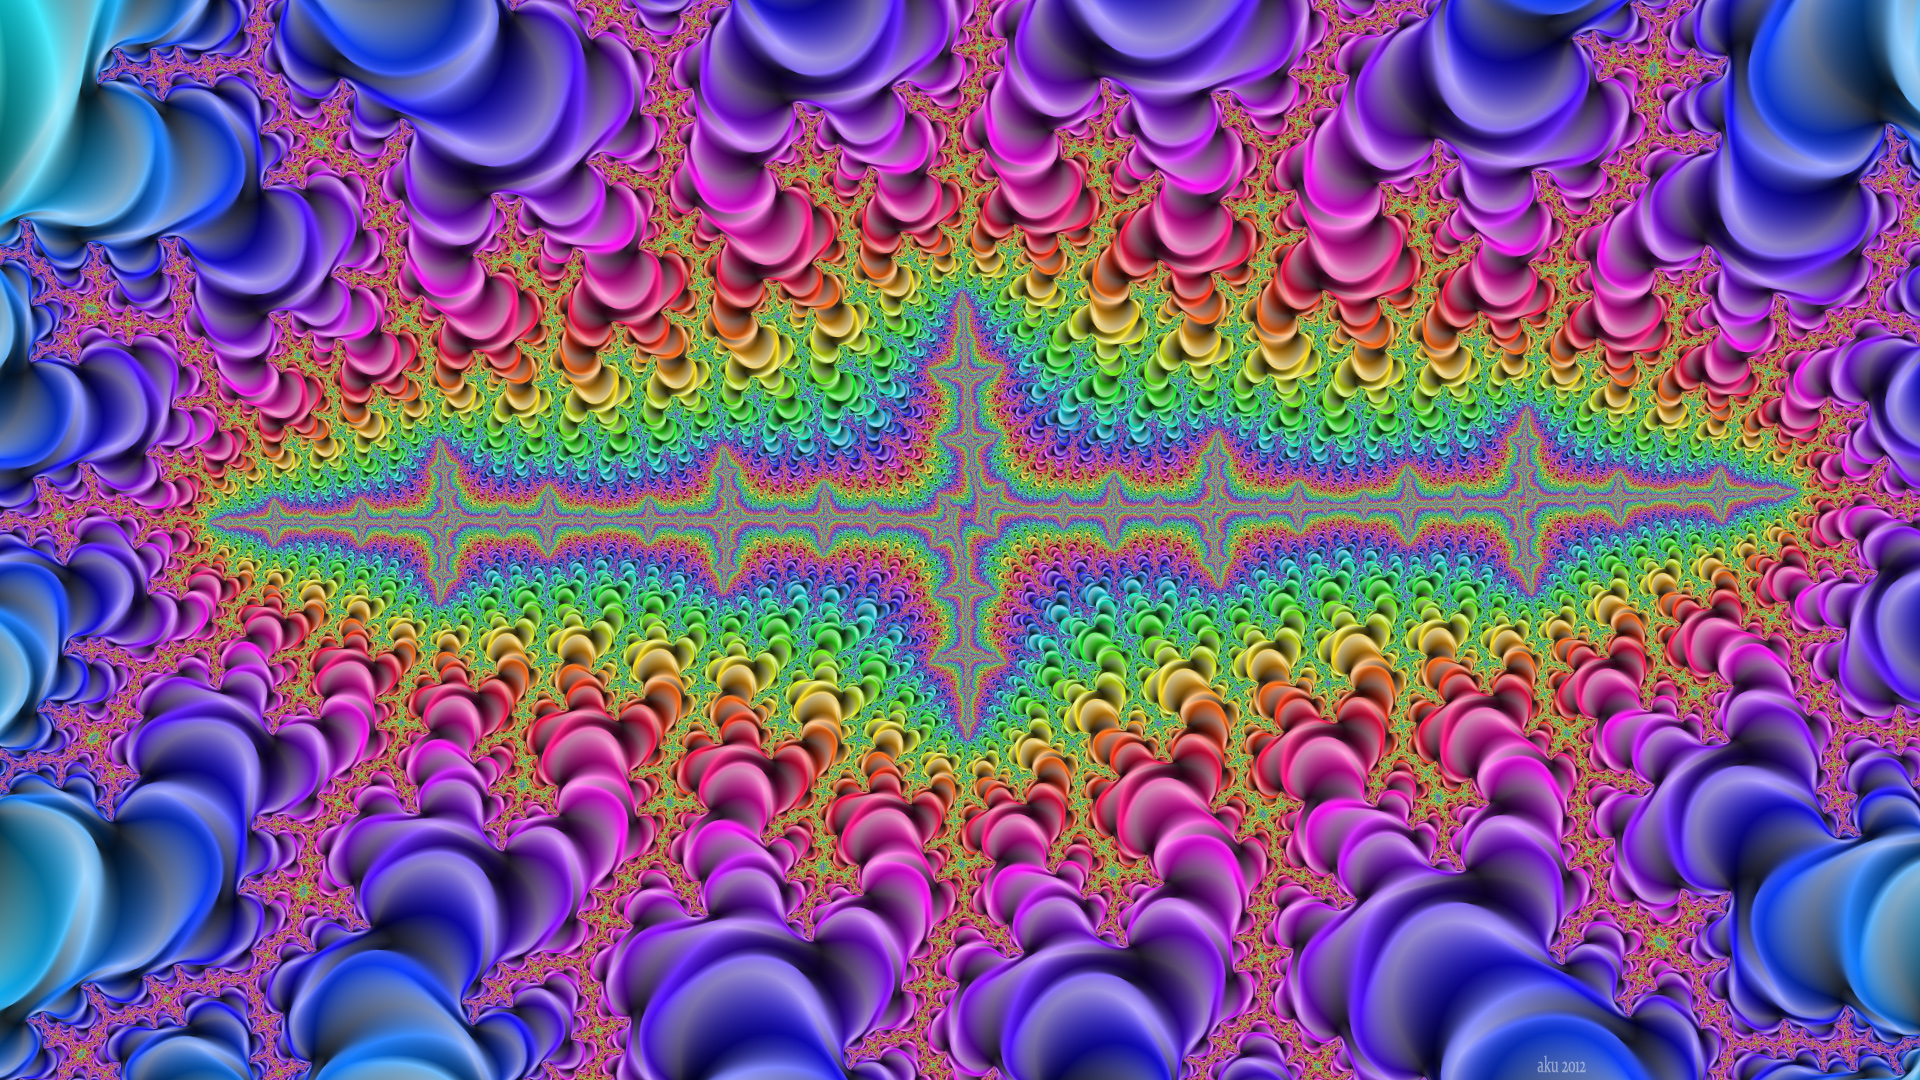 Artistic   Psychedelic Wallpaper 1920x1080